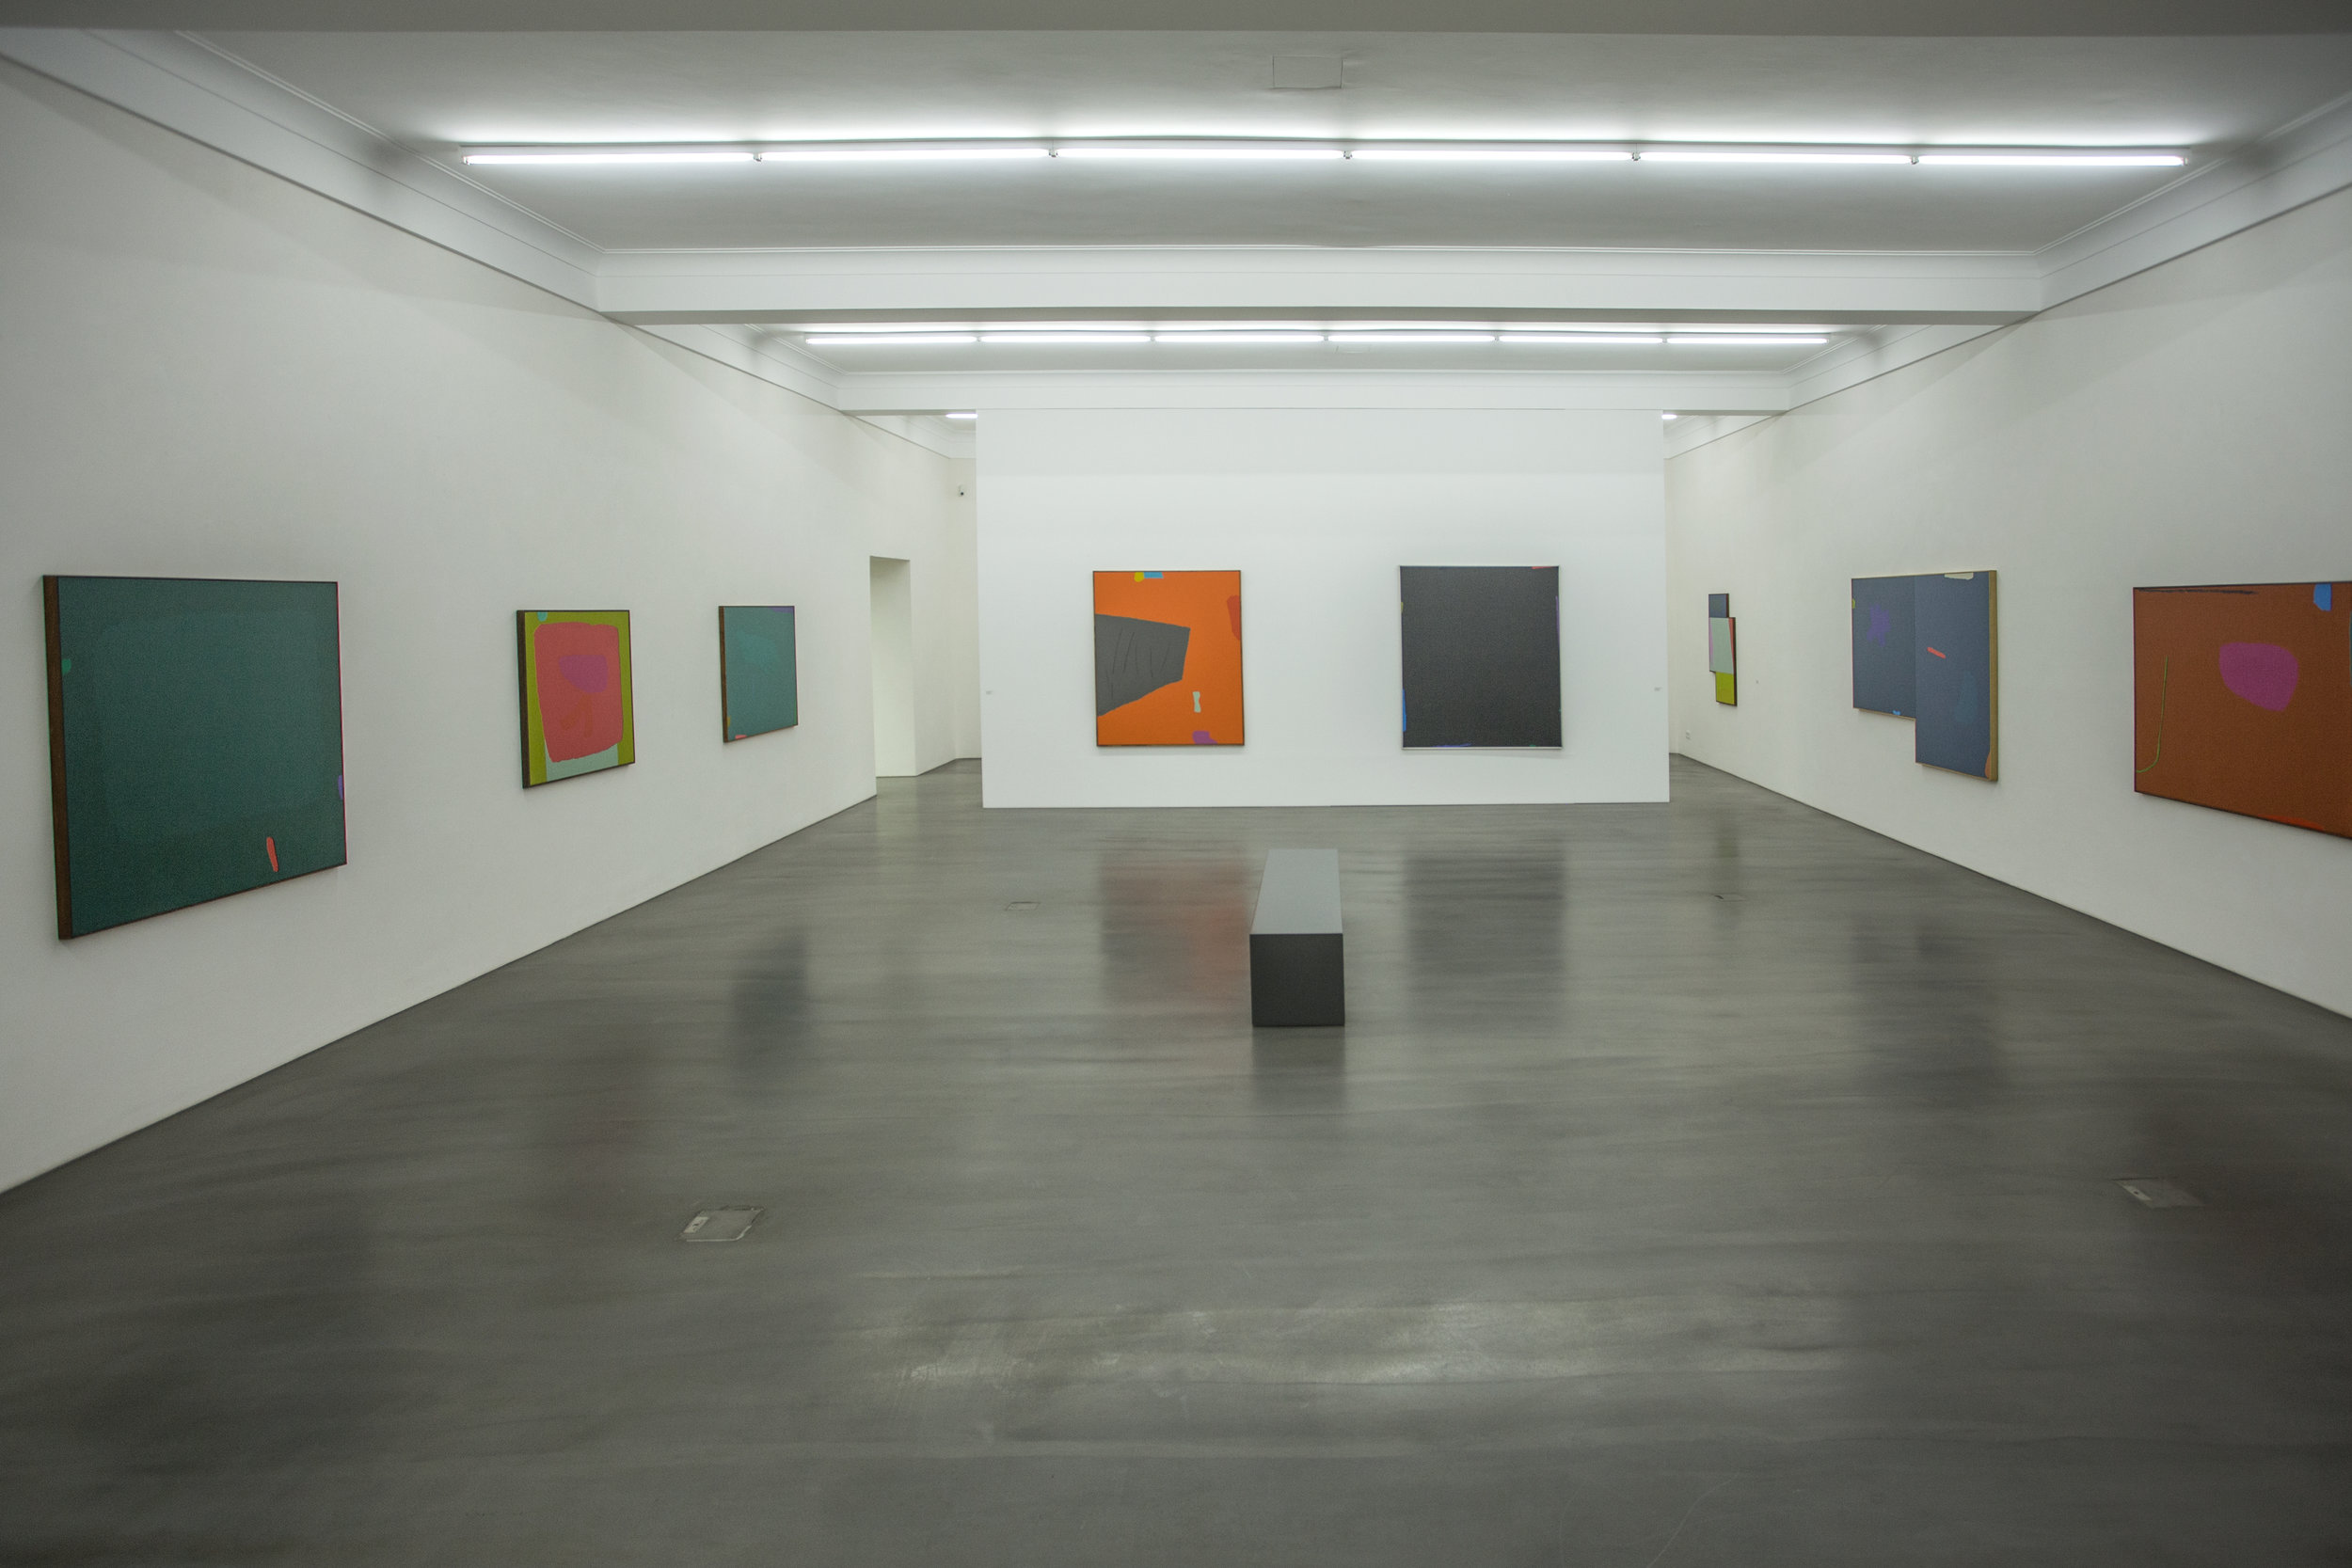 "(De gauche à droite, salle des   Dorothy Fratt   dans l'exposition ""   colourful.frabenfroh   ""): ""Secret Green"" (1985), ""Red and Green"" (1975), ""Thalo with Chaser"" (1983-1987),""Laban's Staves"" (1991), sans titre (1987), ""Along Night's Measure"" n.d., ""Odyssey"" (1987) et ""Sedona Green Line"" (1978)"